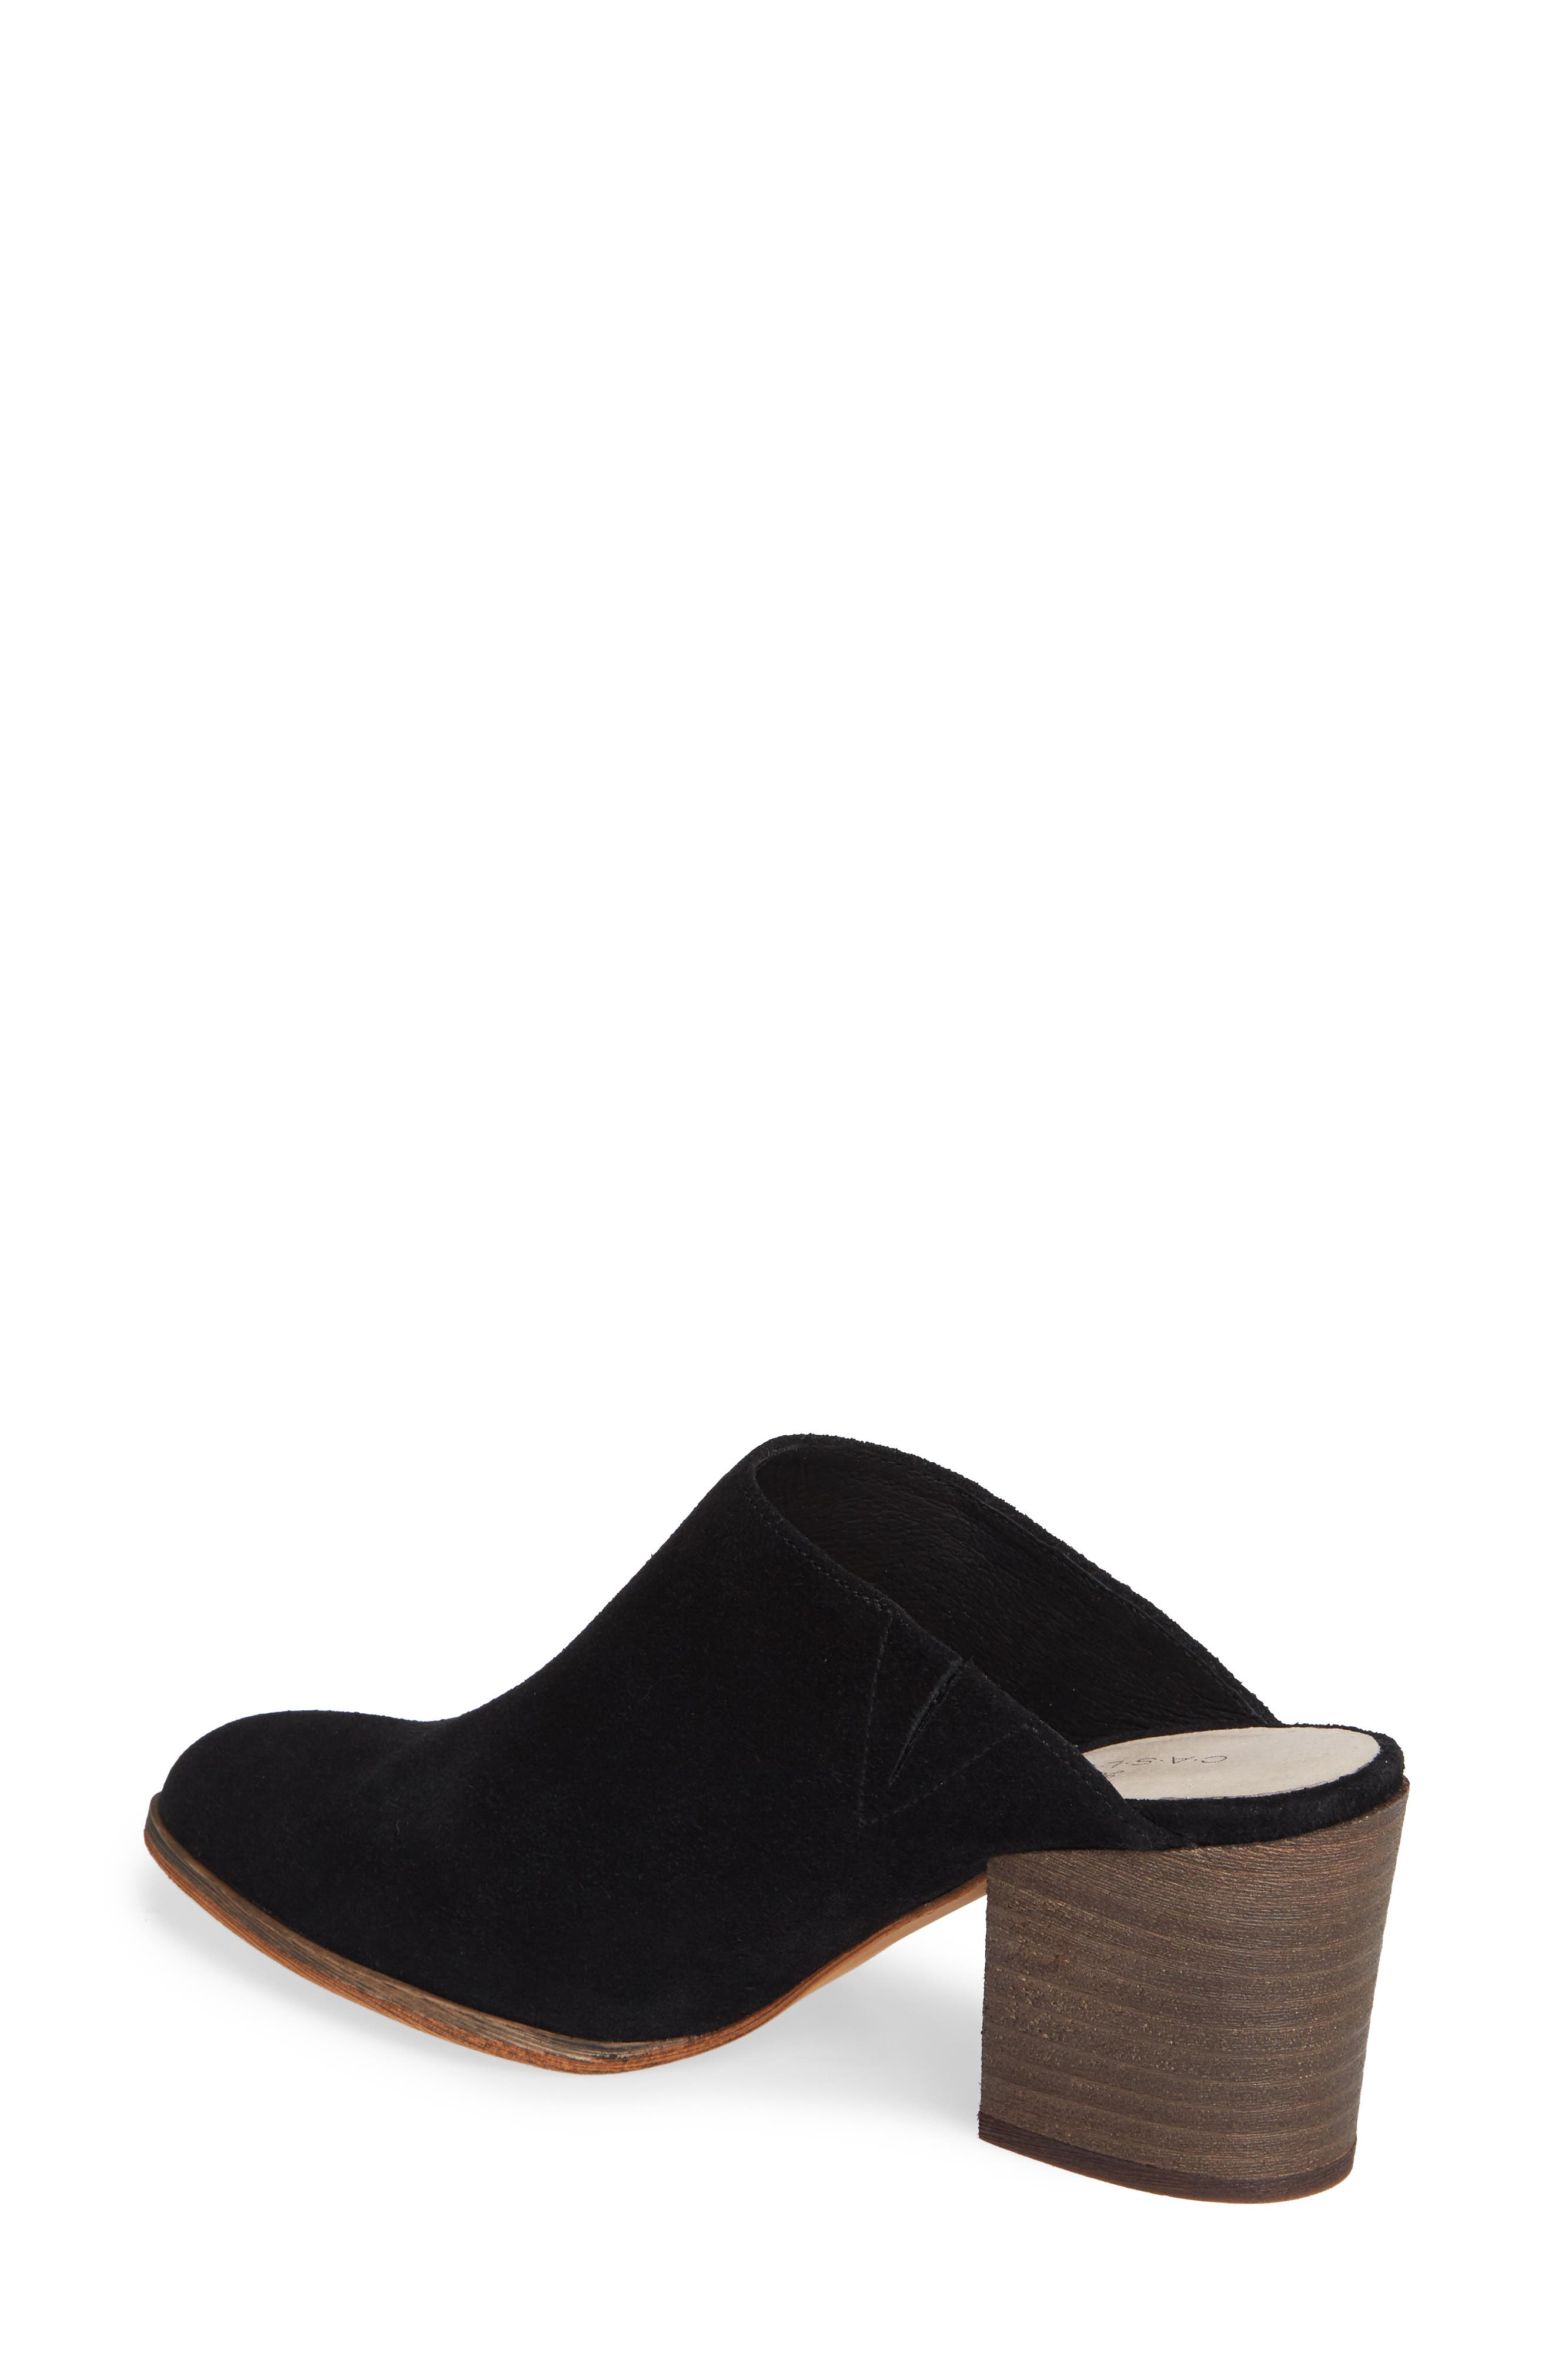 Miccah Mule,                             Alternate thumbnail 2, color,                             BLACK SUEDE